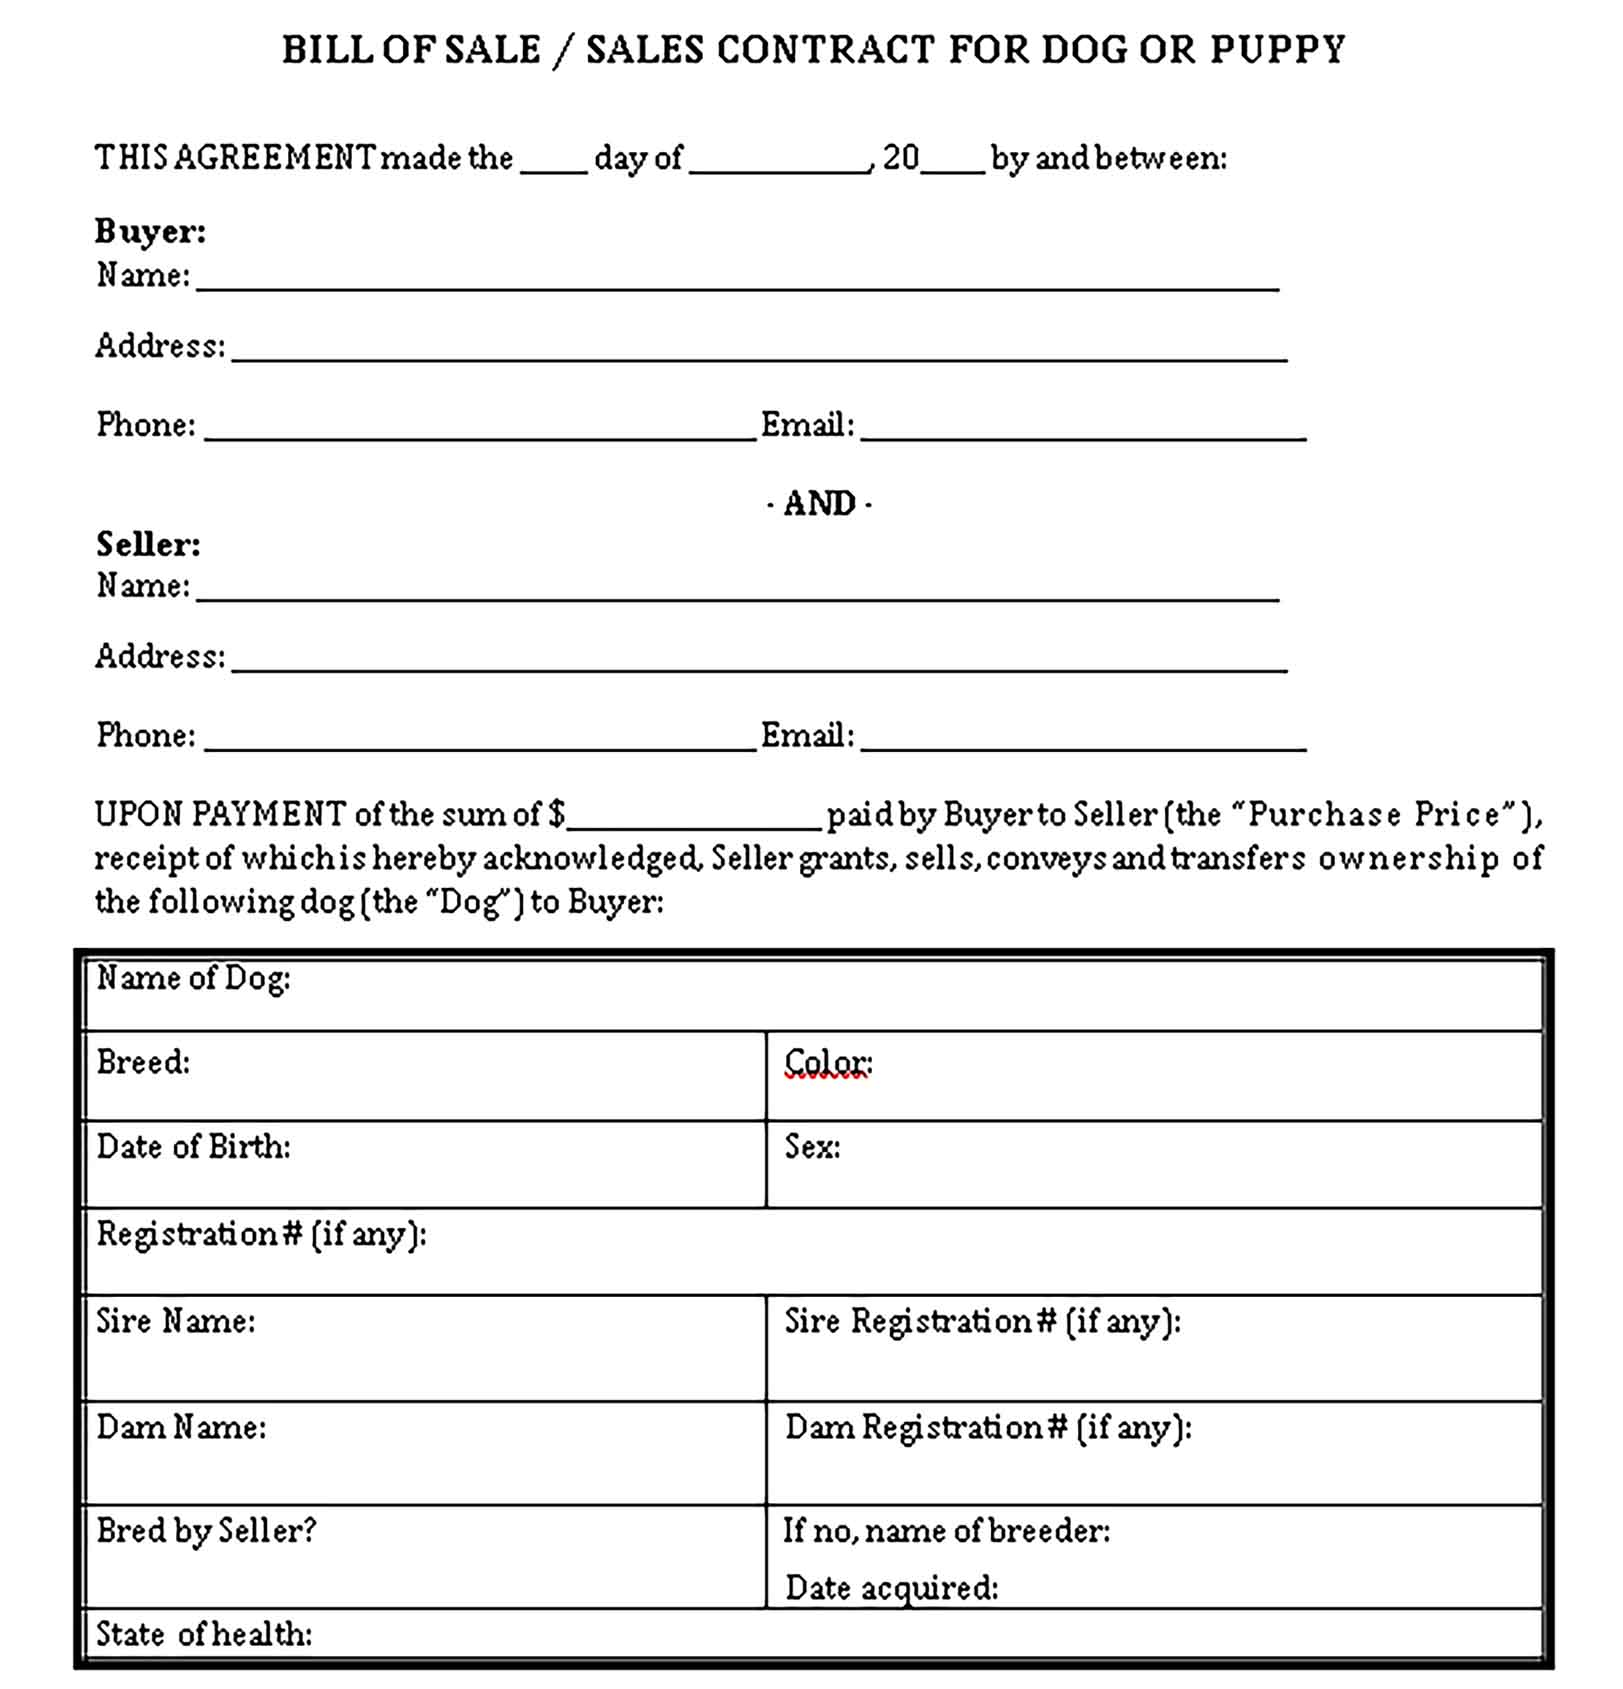 Sample Dog Bill of Sale 002 Templates 1